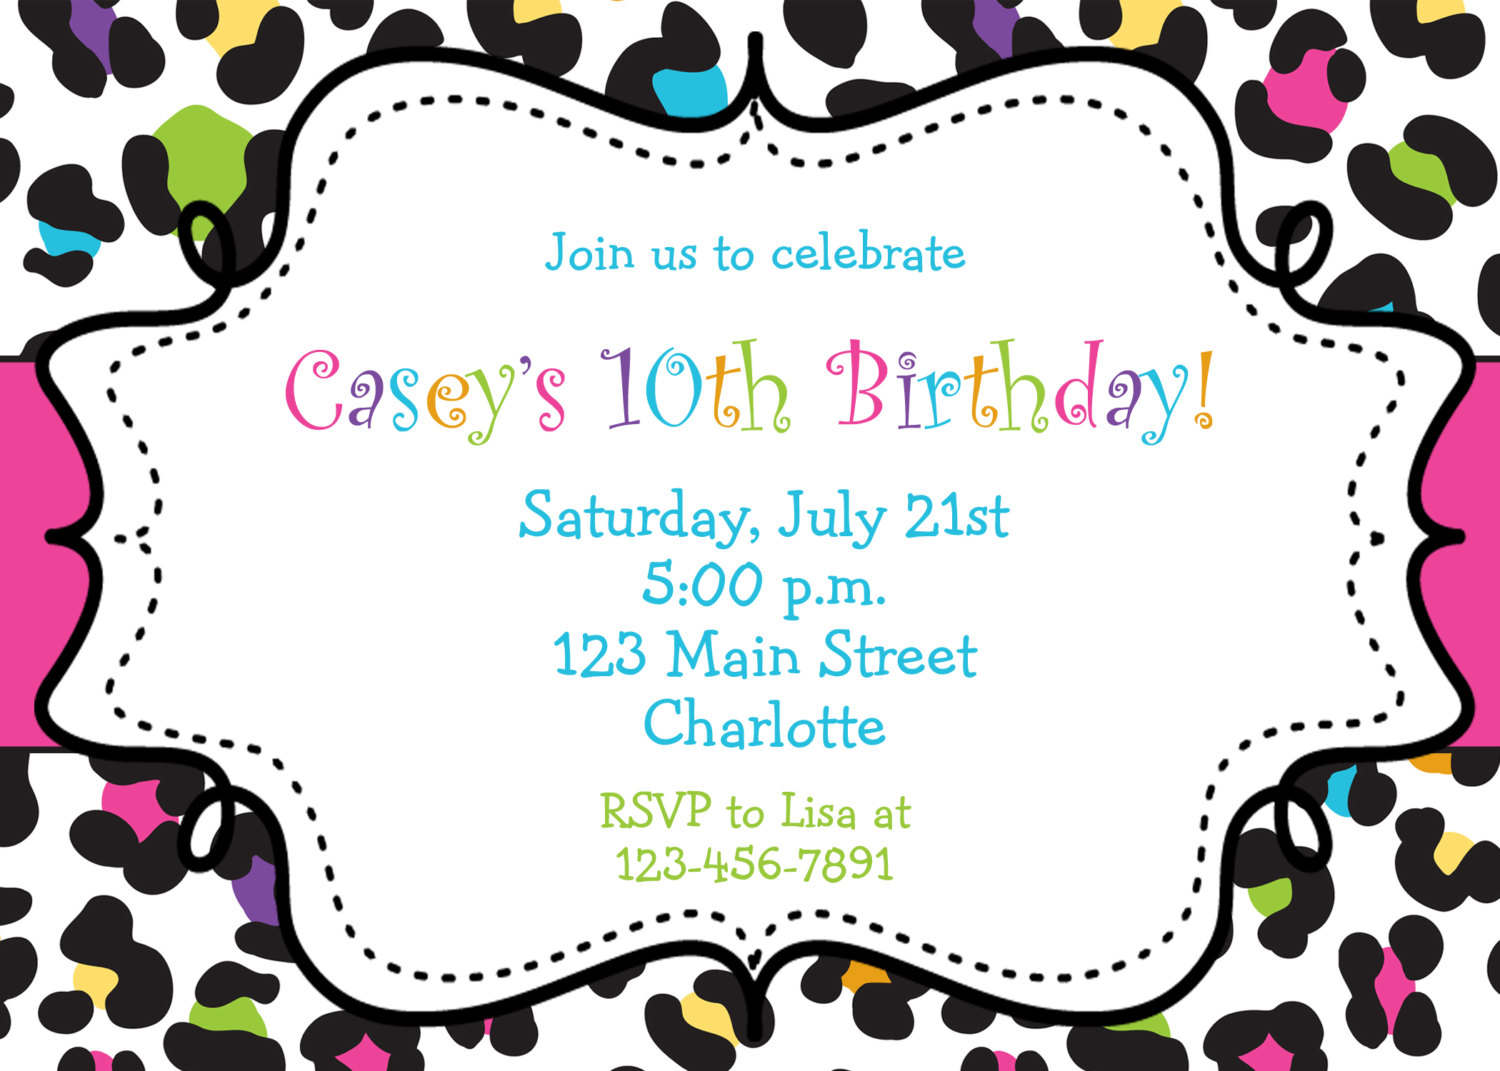 design your own birthday invitations free printable ; birthday-party-invitations-free-templates-to-design-your-own-Birthday-invitation-in-alluring-styles